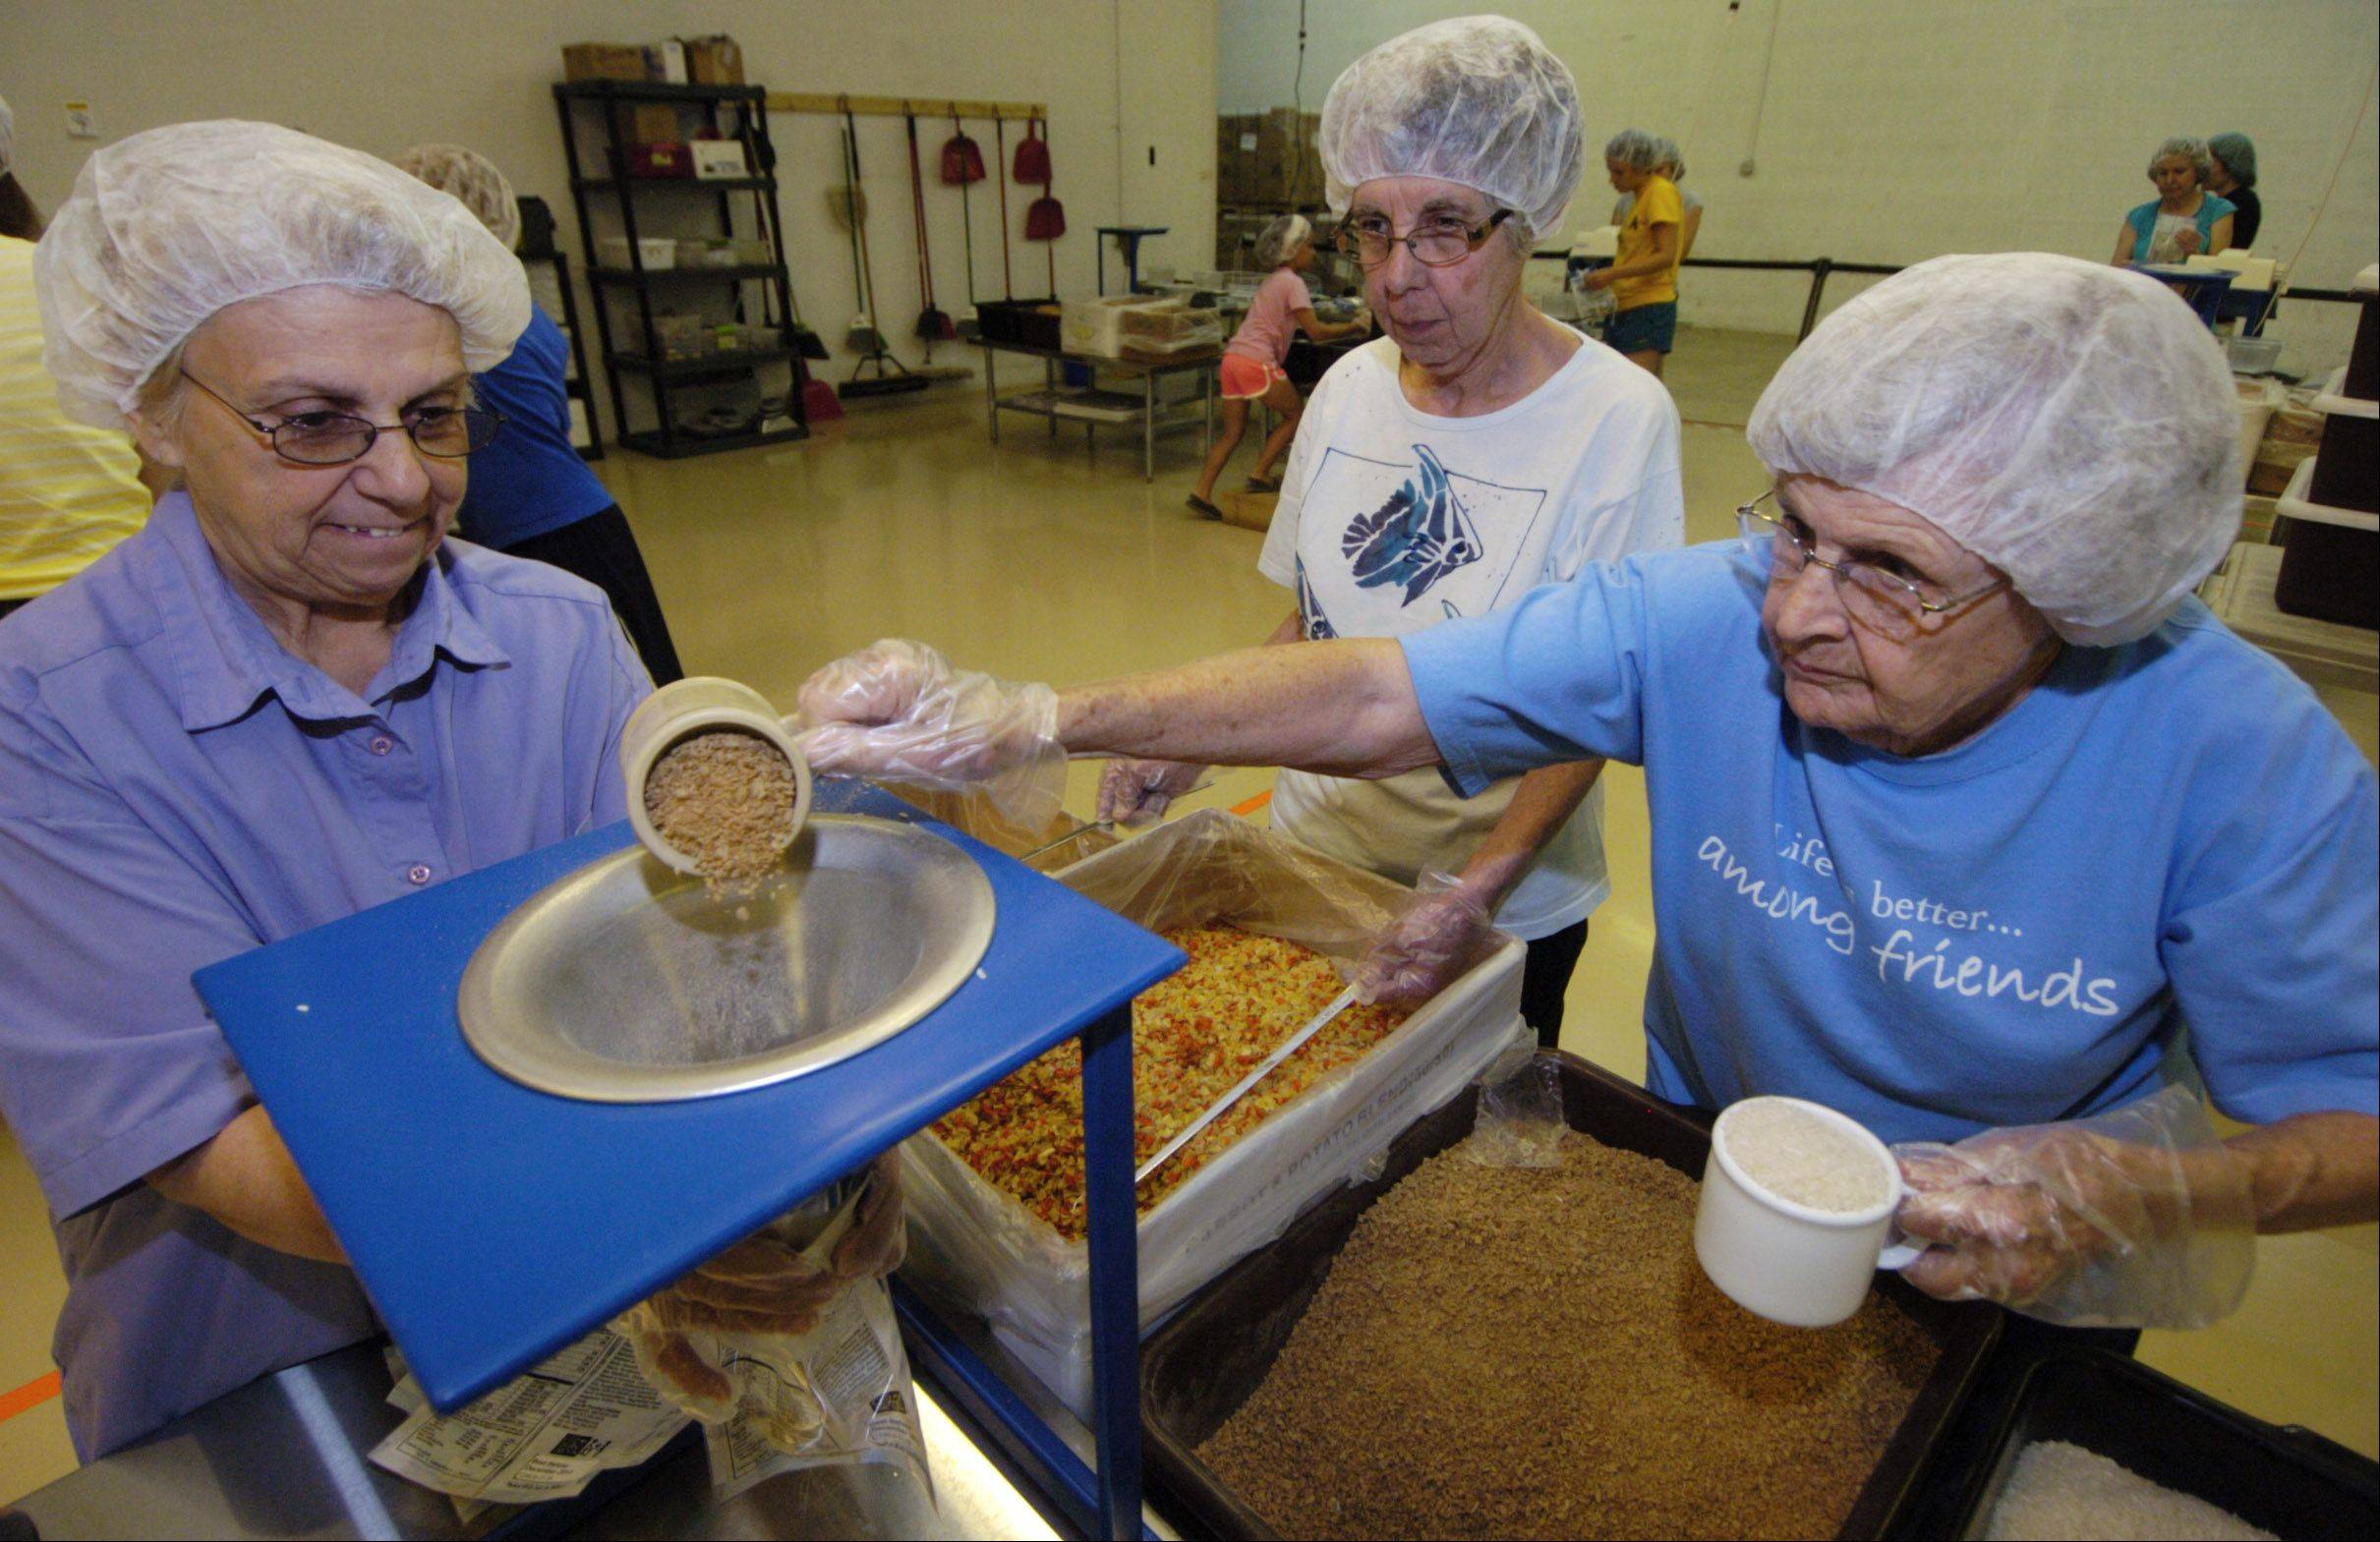 A group of seniors from Friendship Village in Schaumburg helps to pack meals at the Feed My Starving Children facility in Schaumburg.